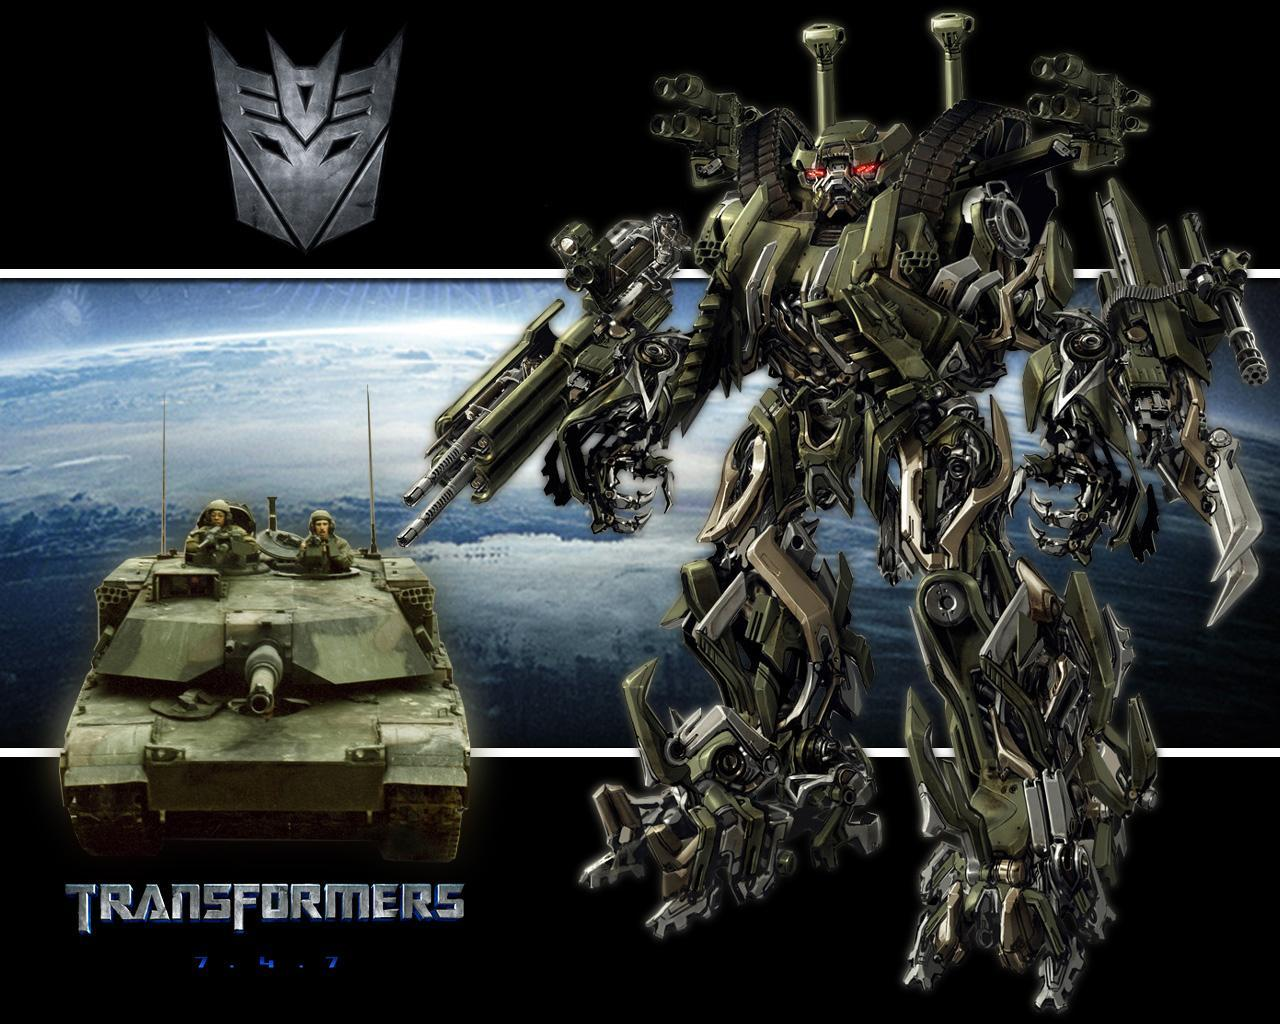 wallpaper transformers 1 transformers - movies movies